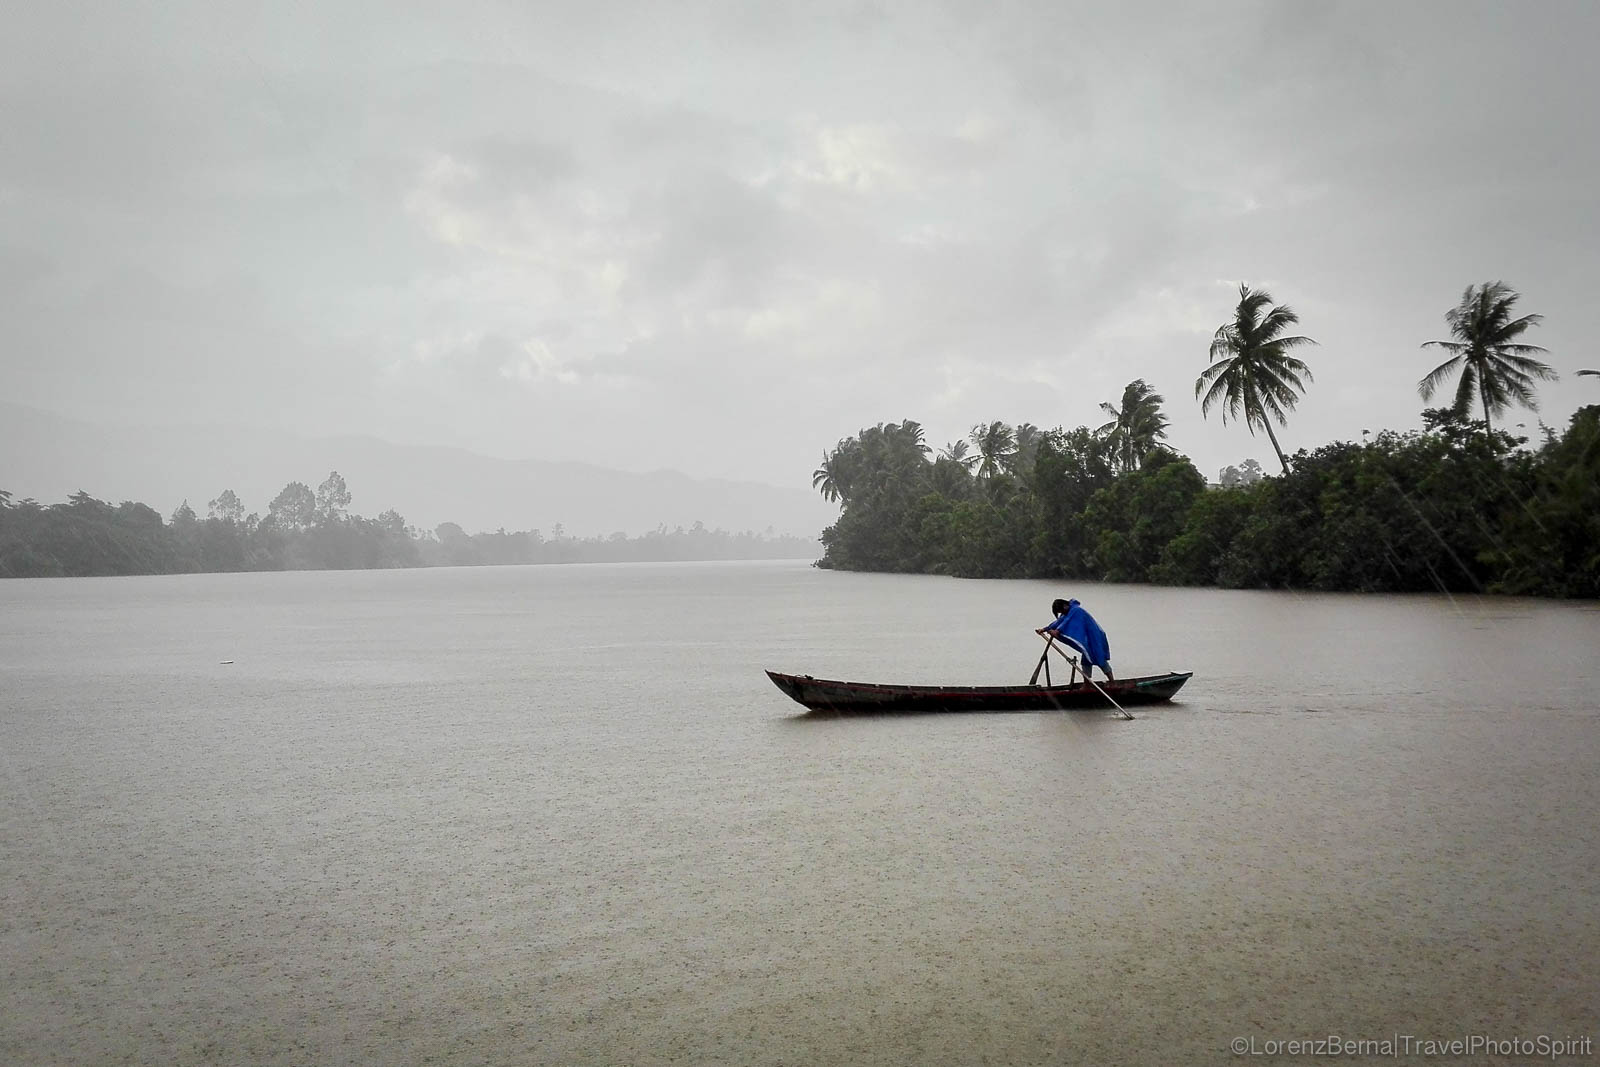 Local fisherman sailing on Kampot River under the heavy Monsoon rain, South Cambodia